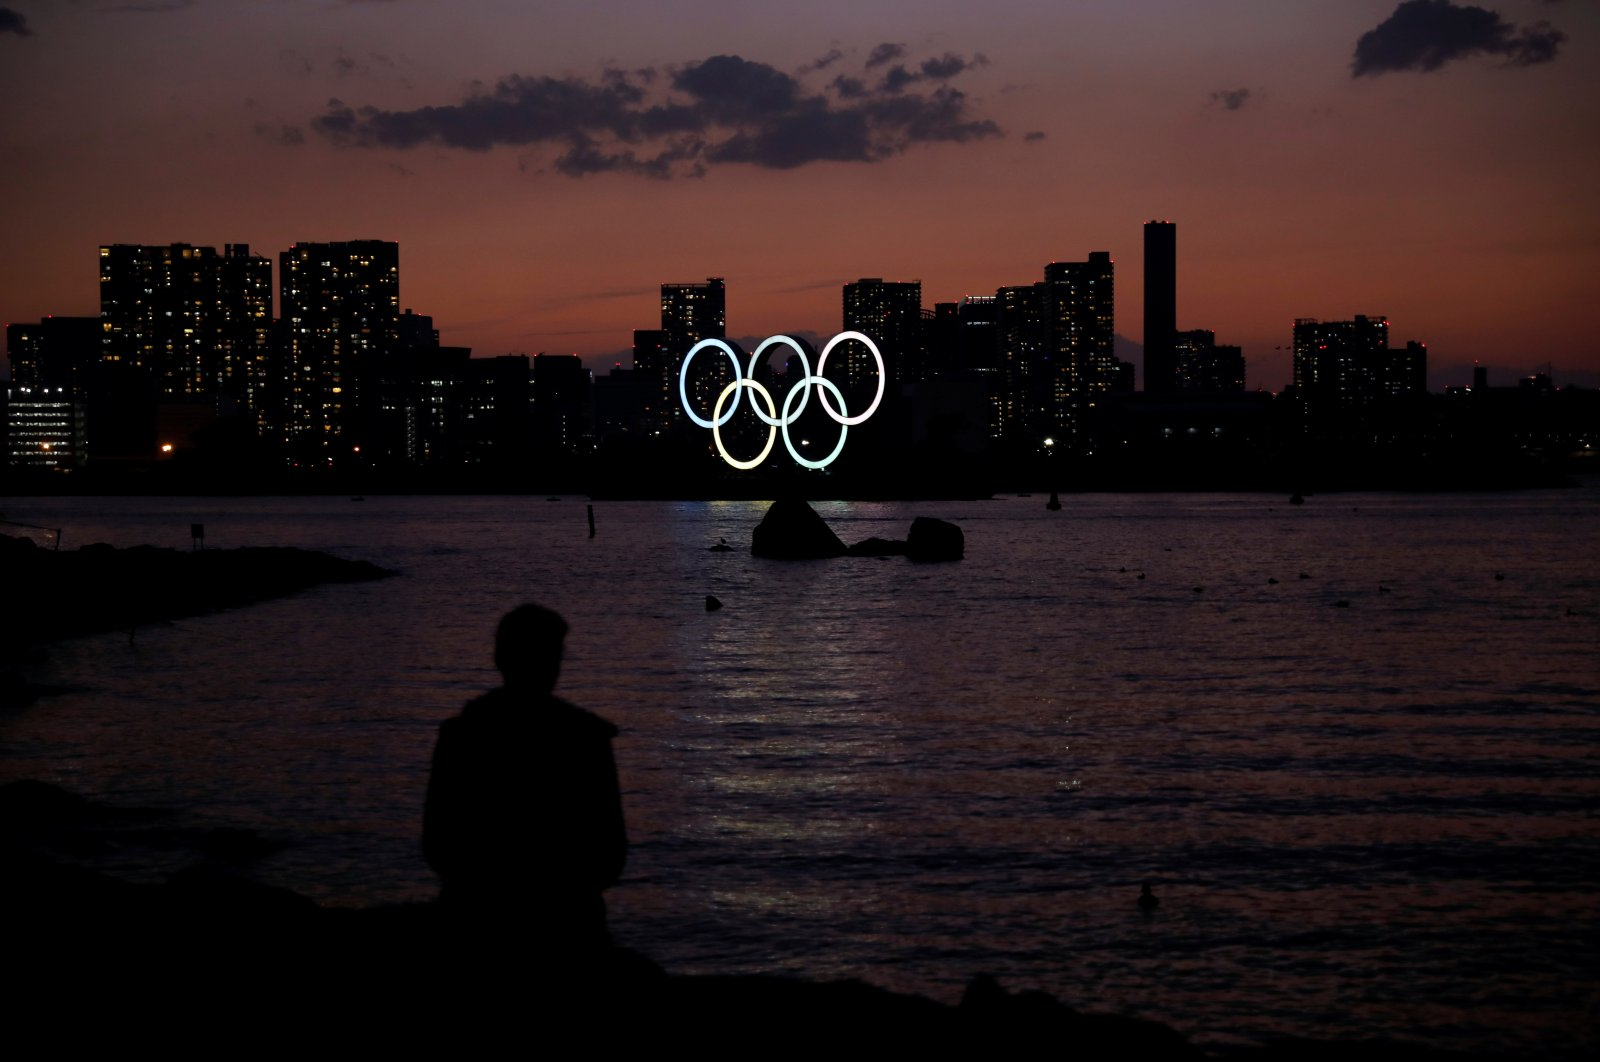 The giant Olympic rings are seen at dusk at the waterfront area at Odaiba Marine Park in Tokyo, Japan, March 22, 2020. (Reuters Photo)